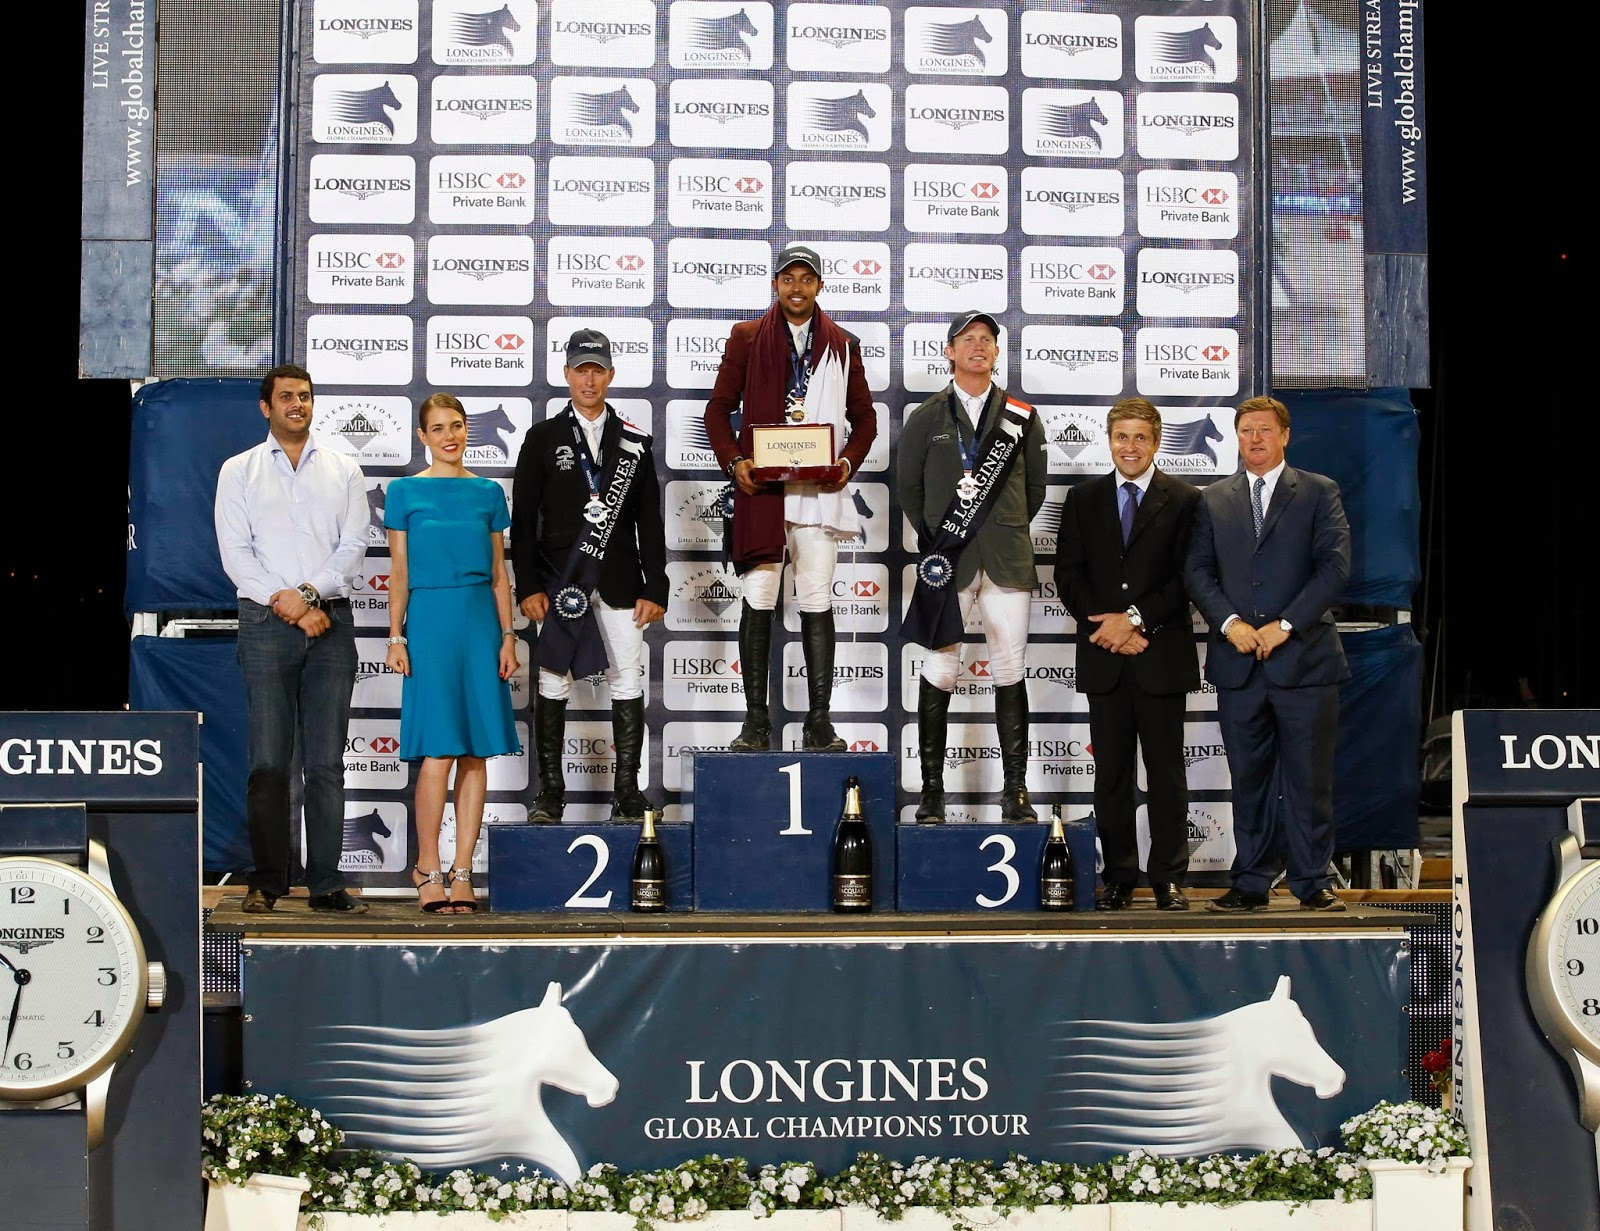 LONGINES Conquest, Global Champions Tour 2014 Montecarlo, Charlotte Casiraghi, Juan Carlos Capelli, Mohammed Bassem Hassan